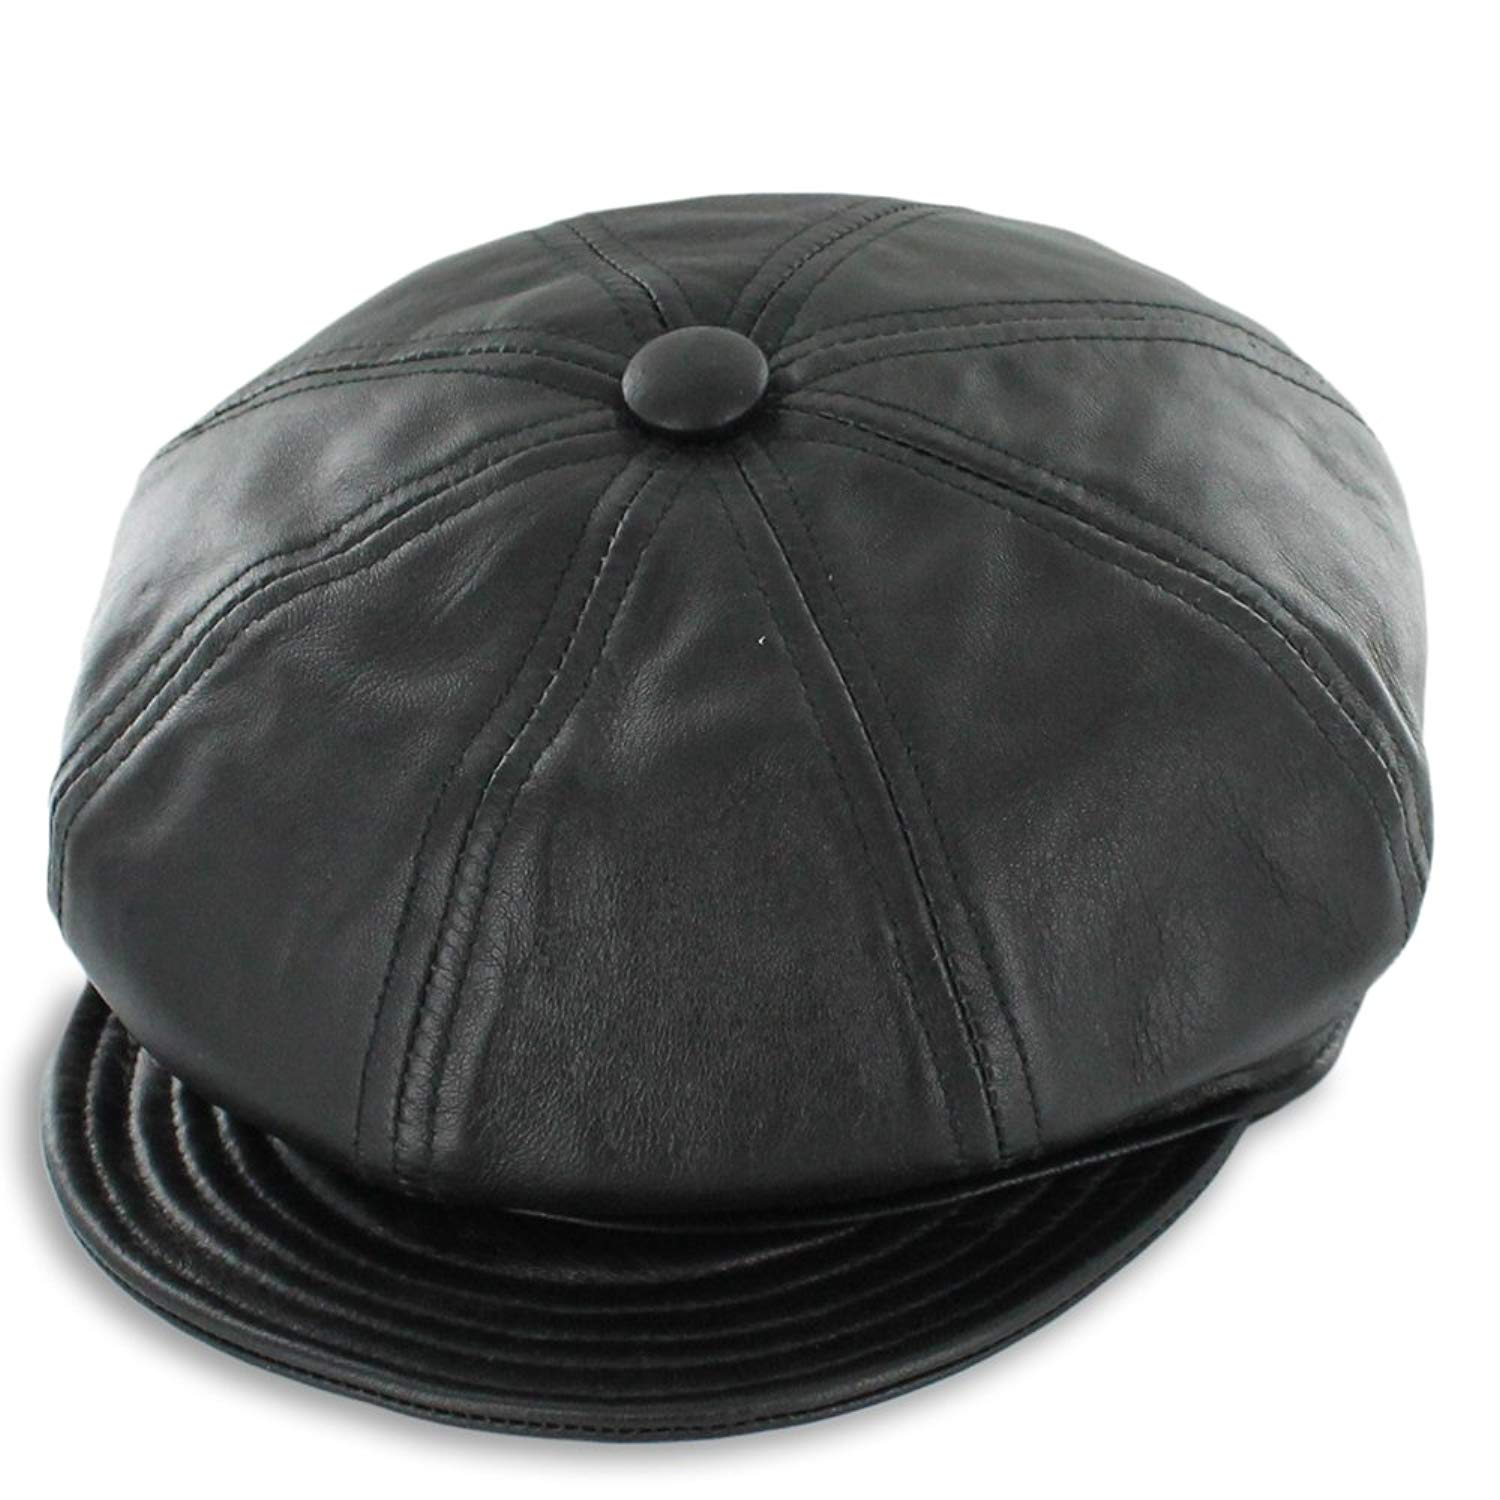 Get Quotations · Hats in the Belfry Belfry Gatsby - Genuine Leather Newsboy  Cap (Small a156012142f5